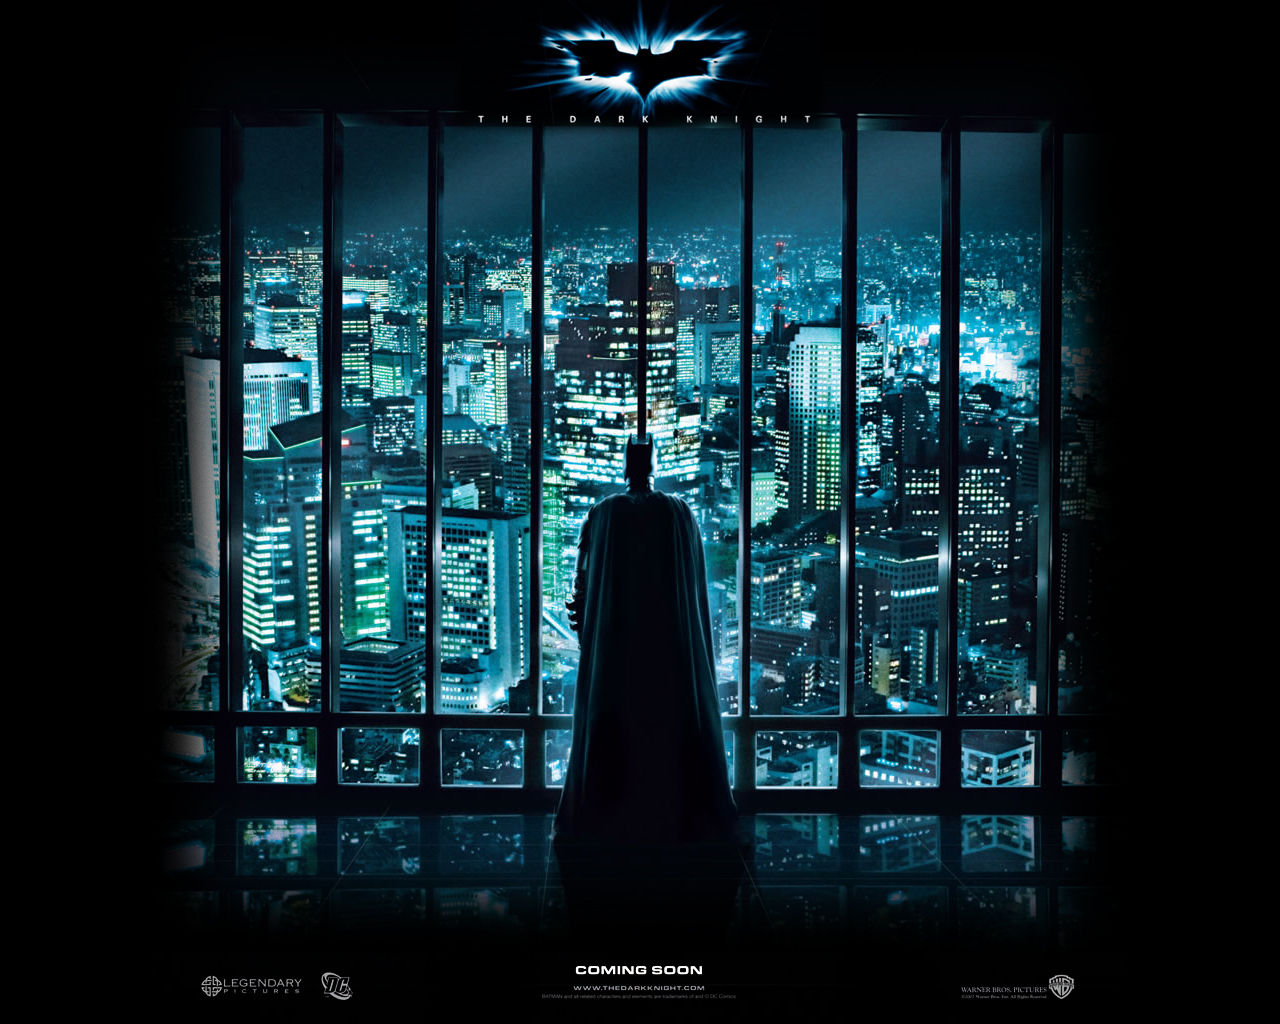 The Dark Knight Images Tdk Wallpaper Hd Wallpaper And Background